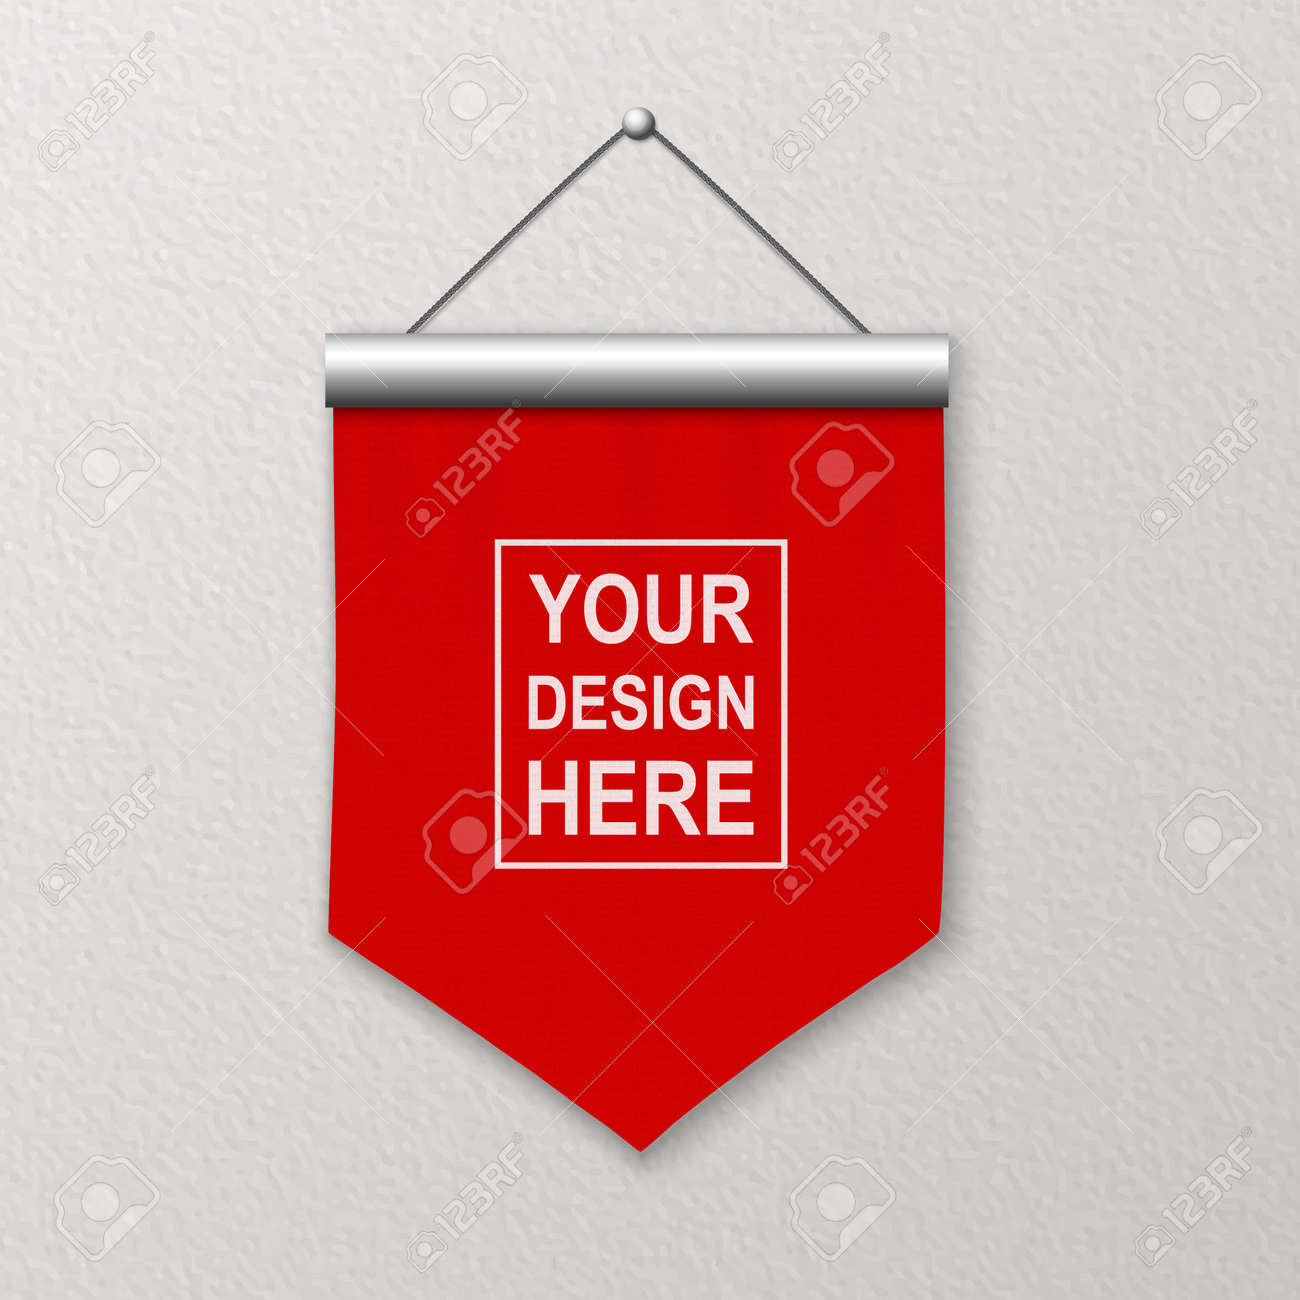 Vector 3d Realistic Blank Red Pennant Wall Hanging, Design Template, Mockup. Linen Pennant Closeup on Textured Wall. Empty Fabric Flag, Advertising Canvas Banner - 173533447